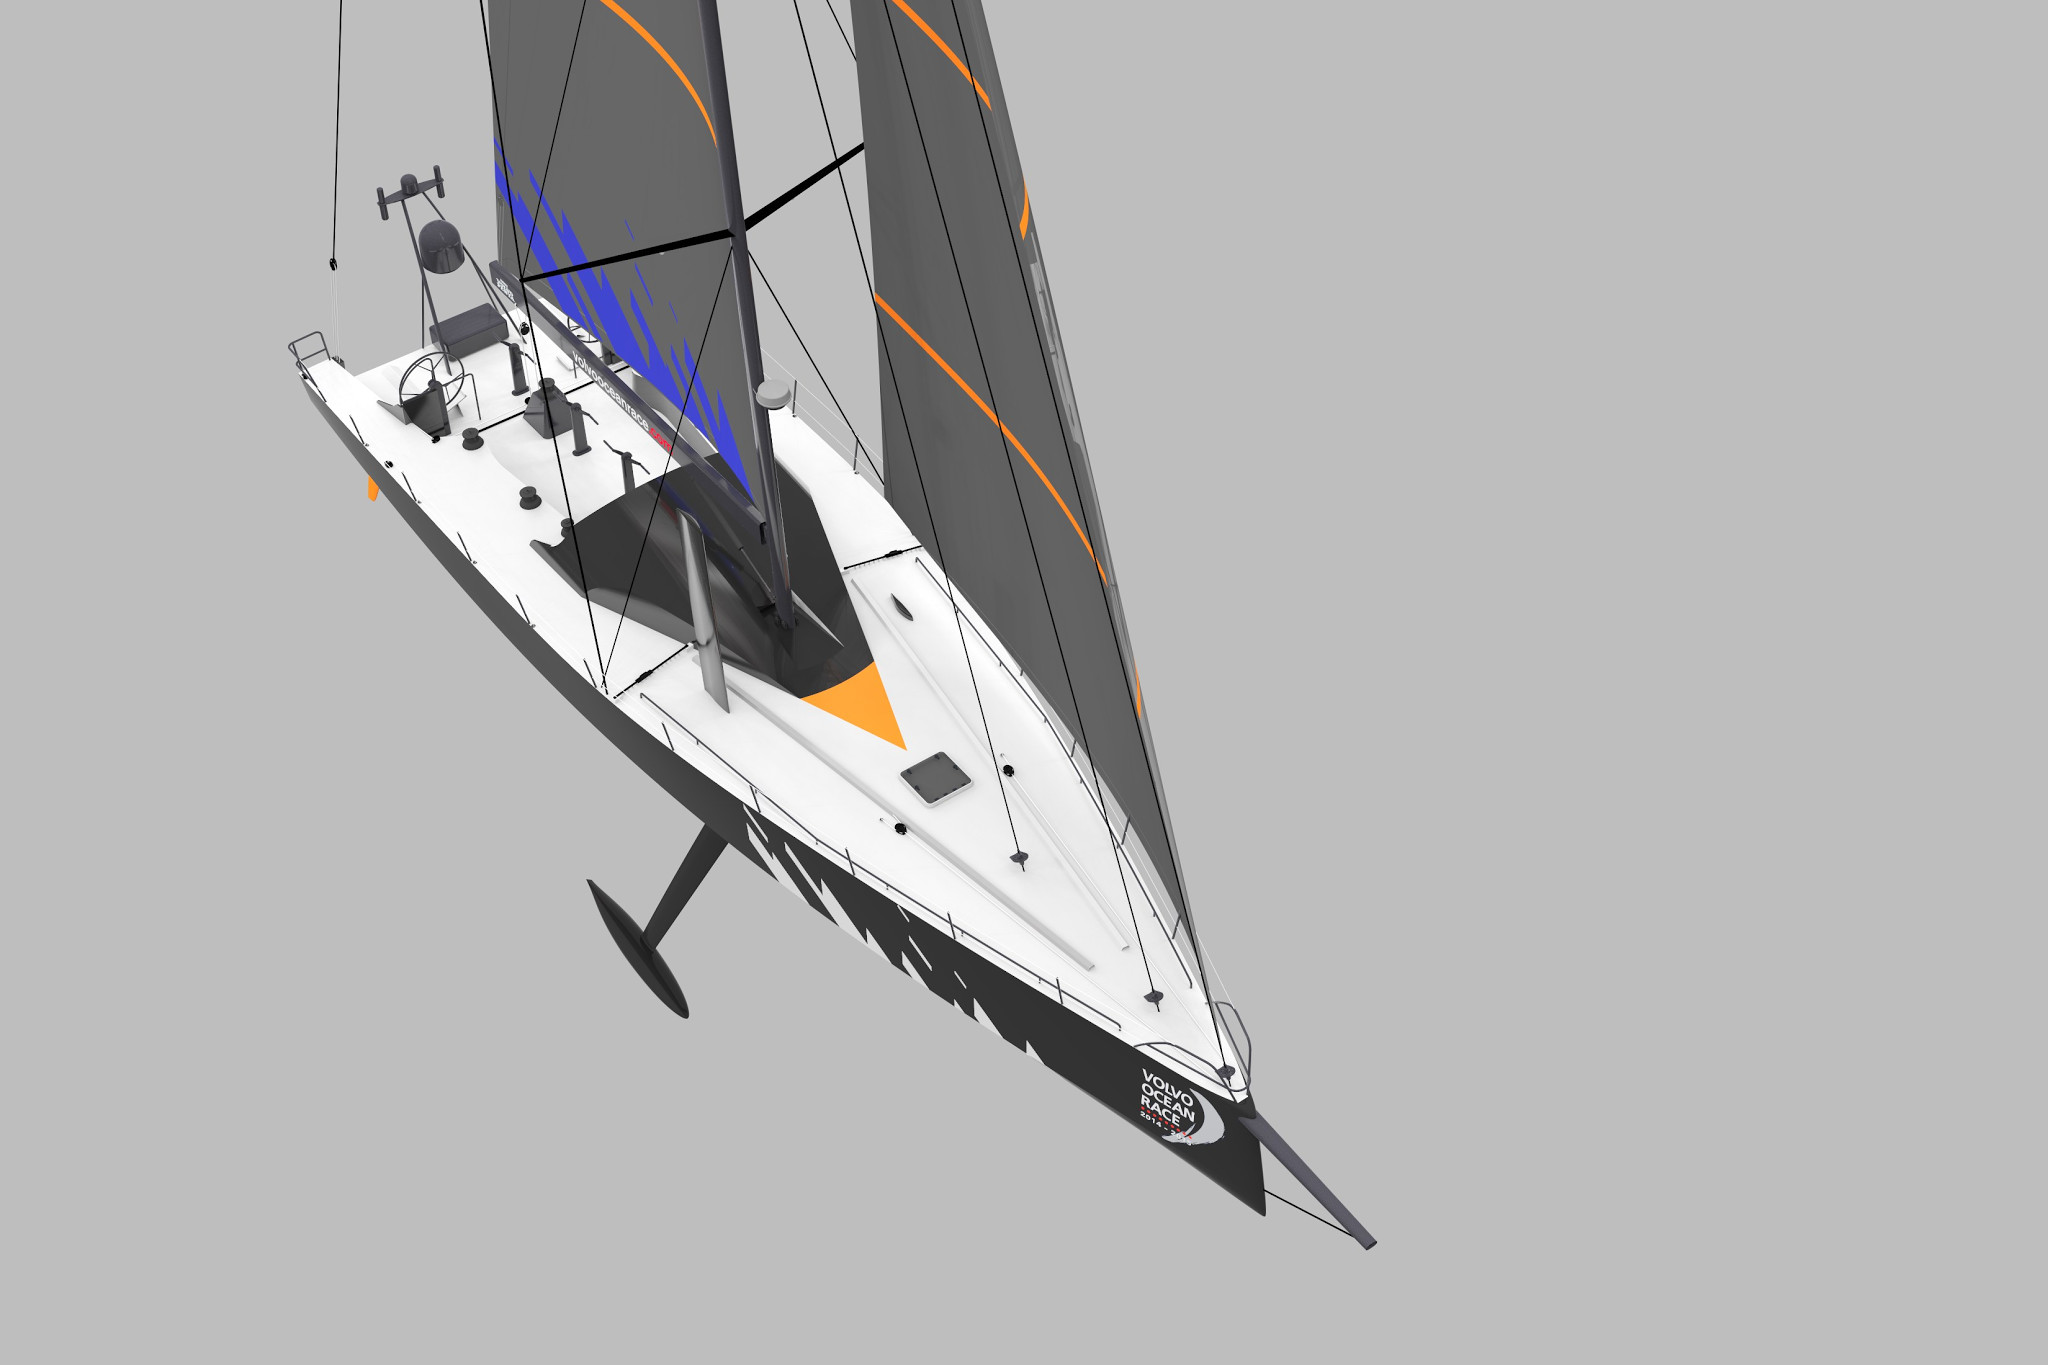 Donan Ravens Sailing Trivia The Design For The Volvo